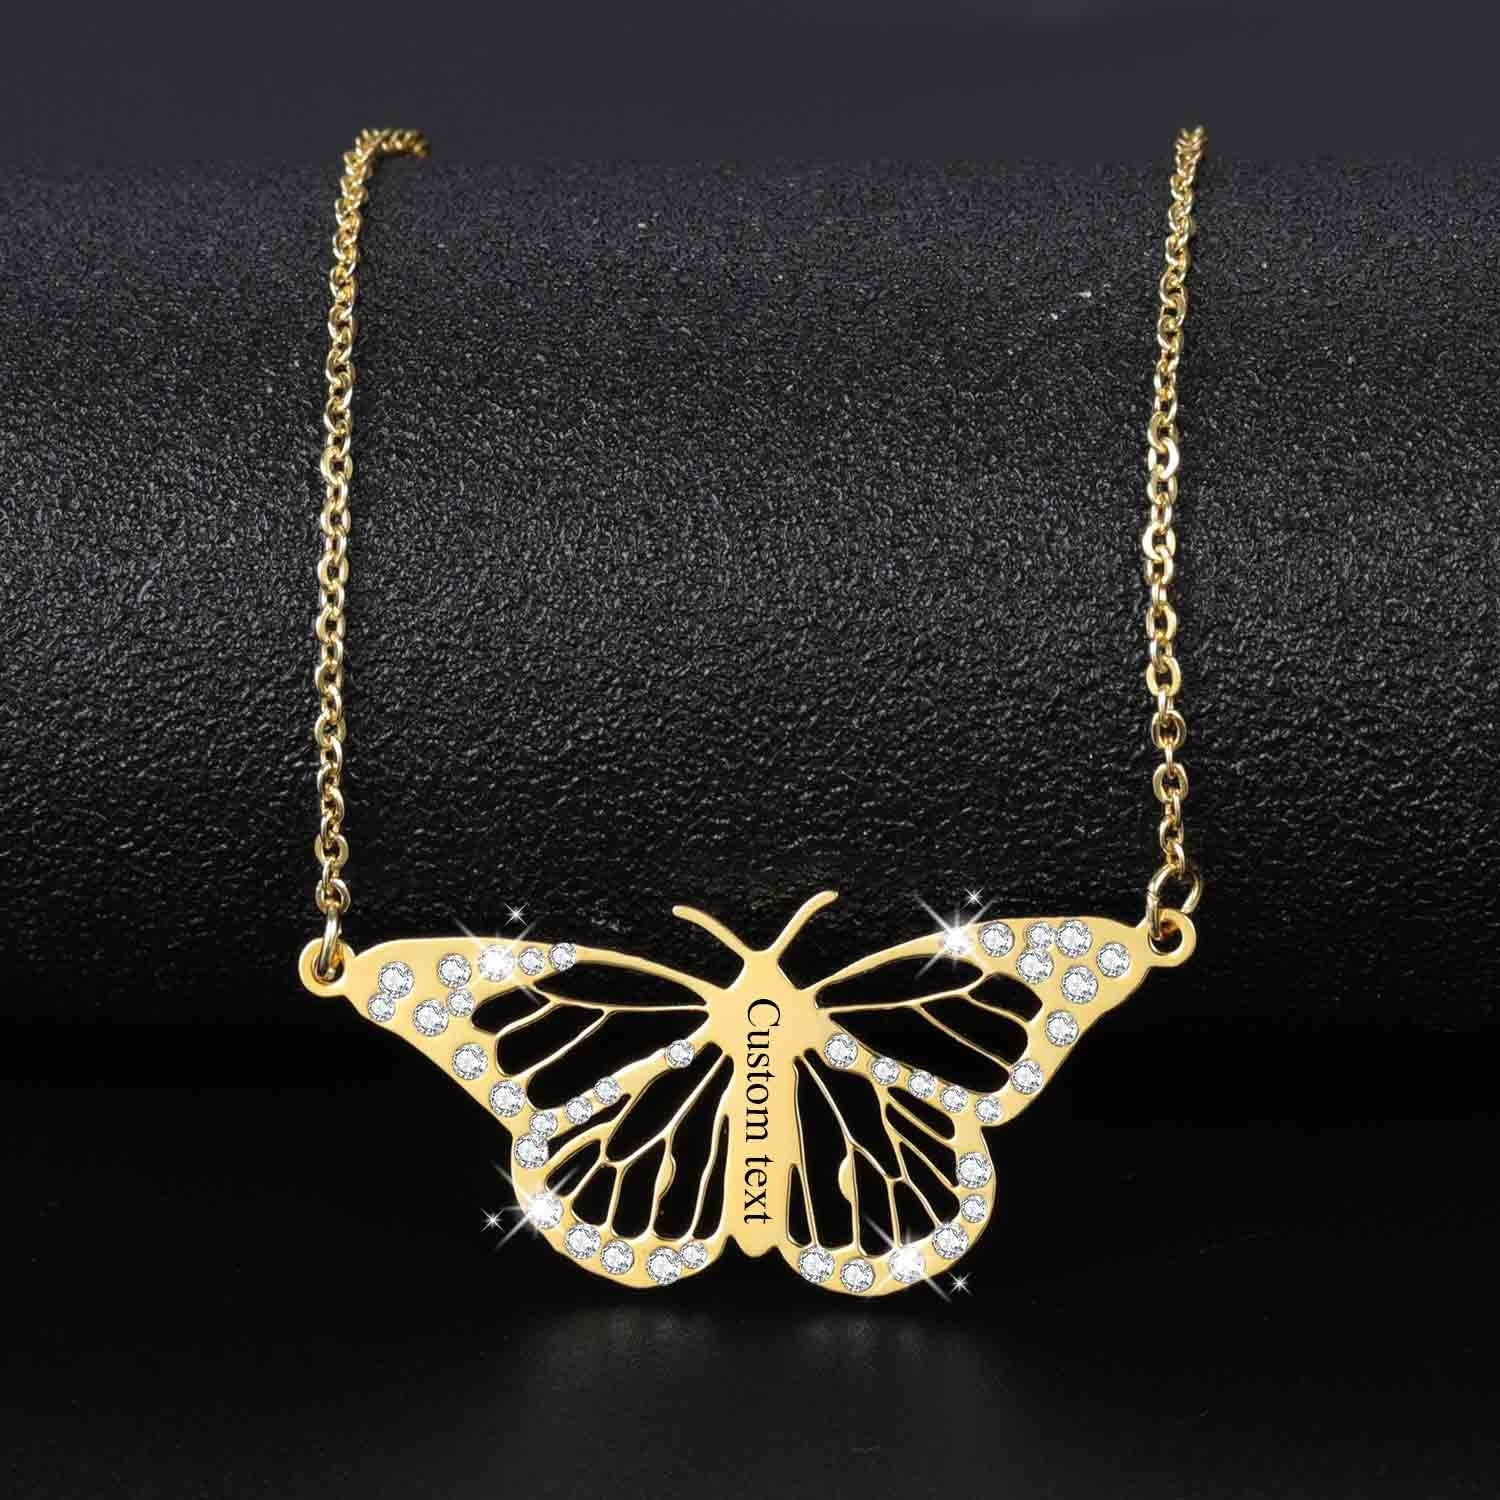 Personalized Blinged Butterfly Necklace